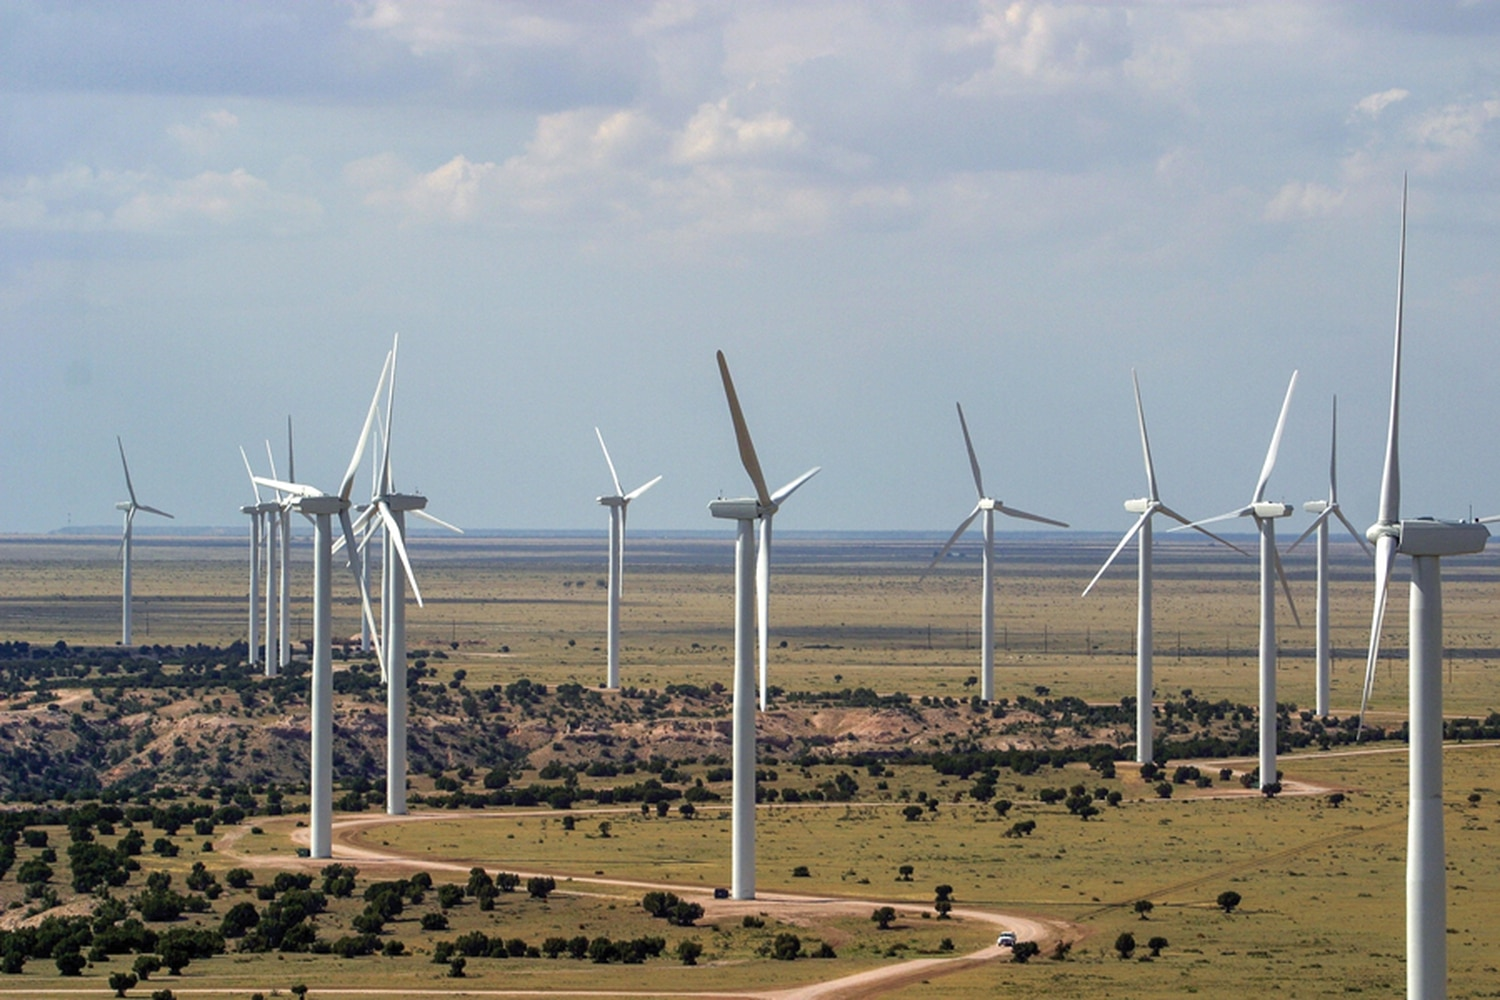 Solar and wind power are now cheaper to produce than coal power.